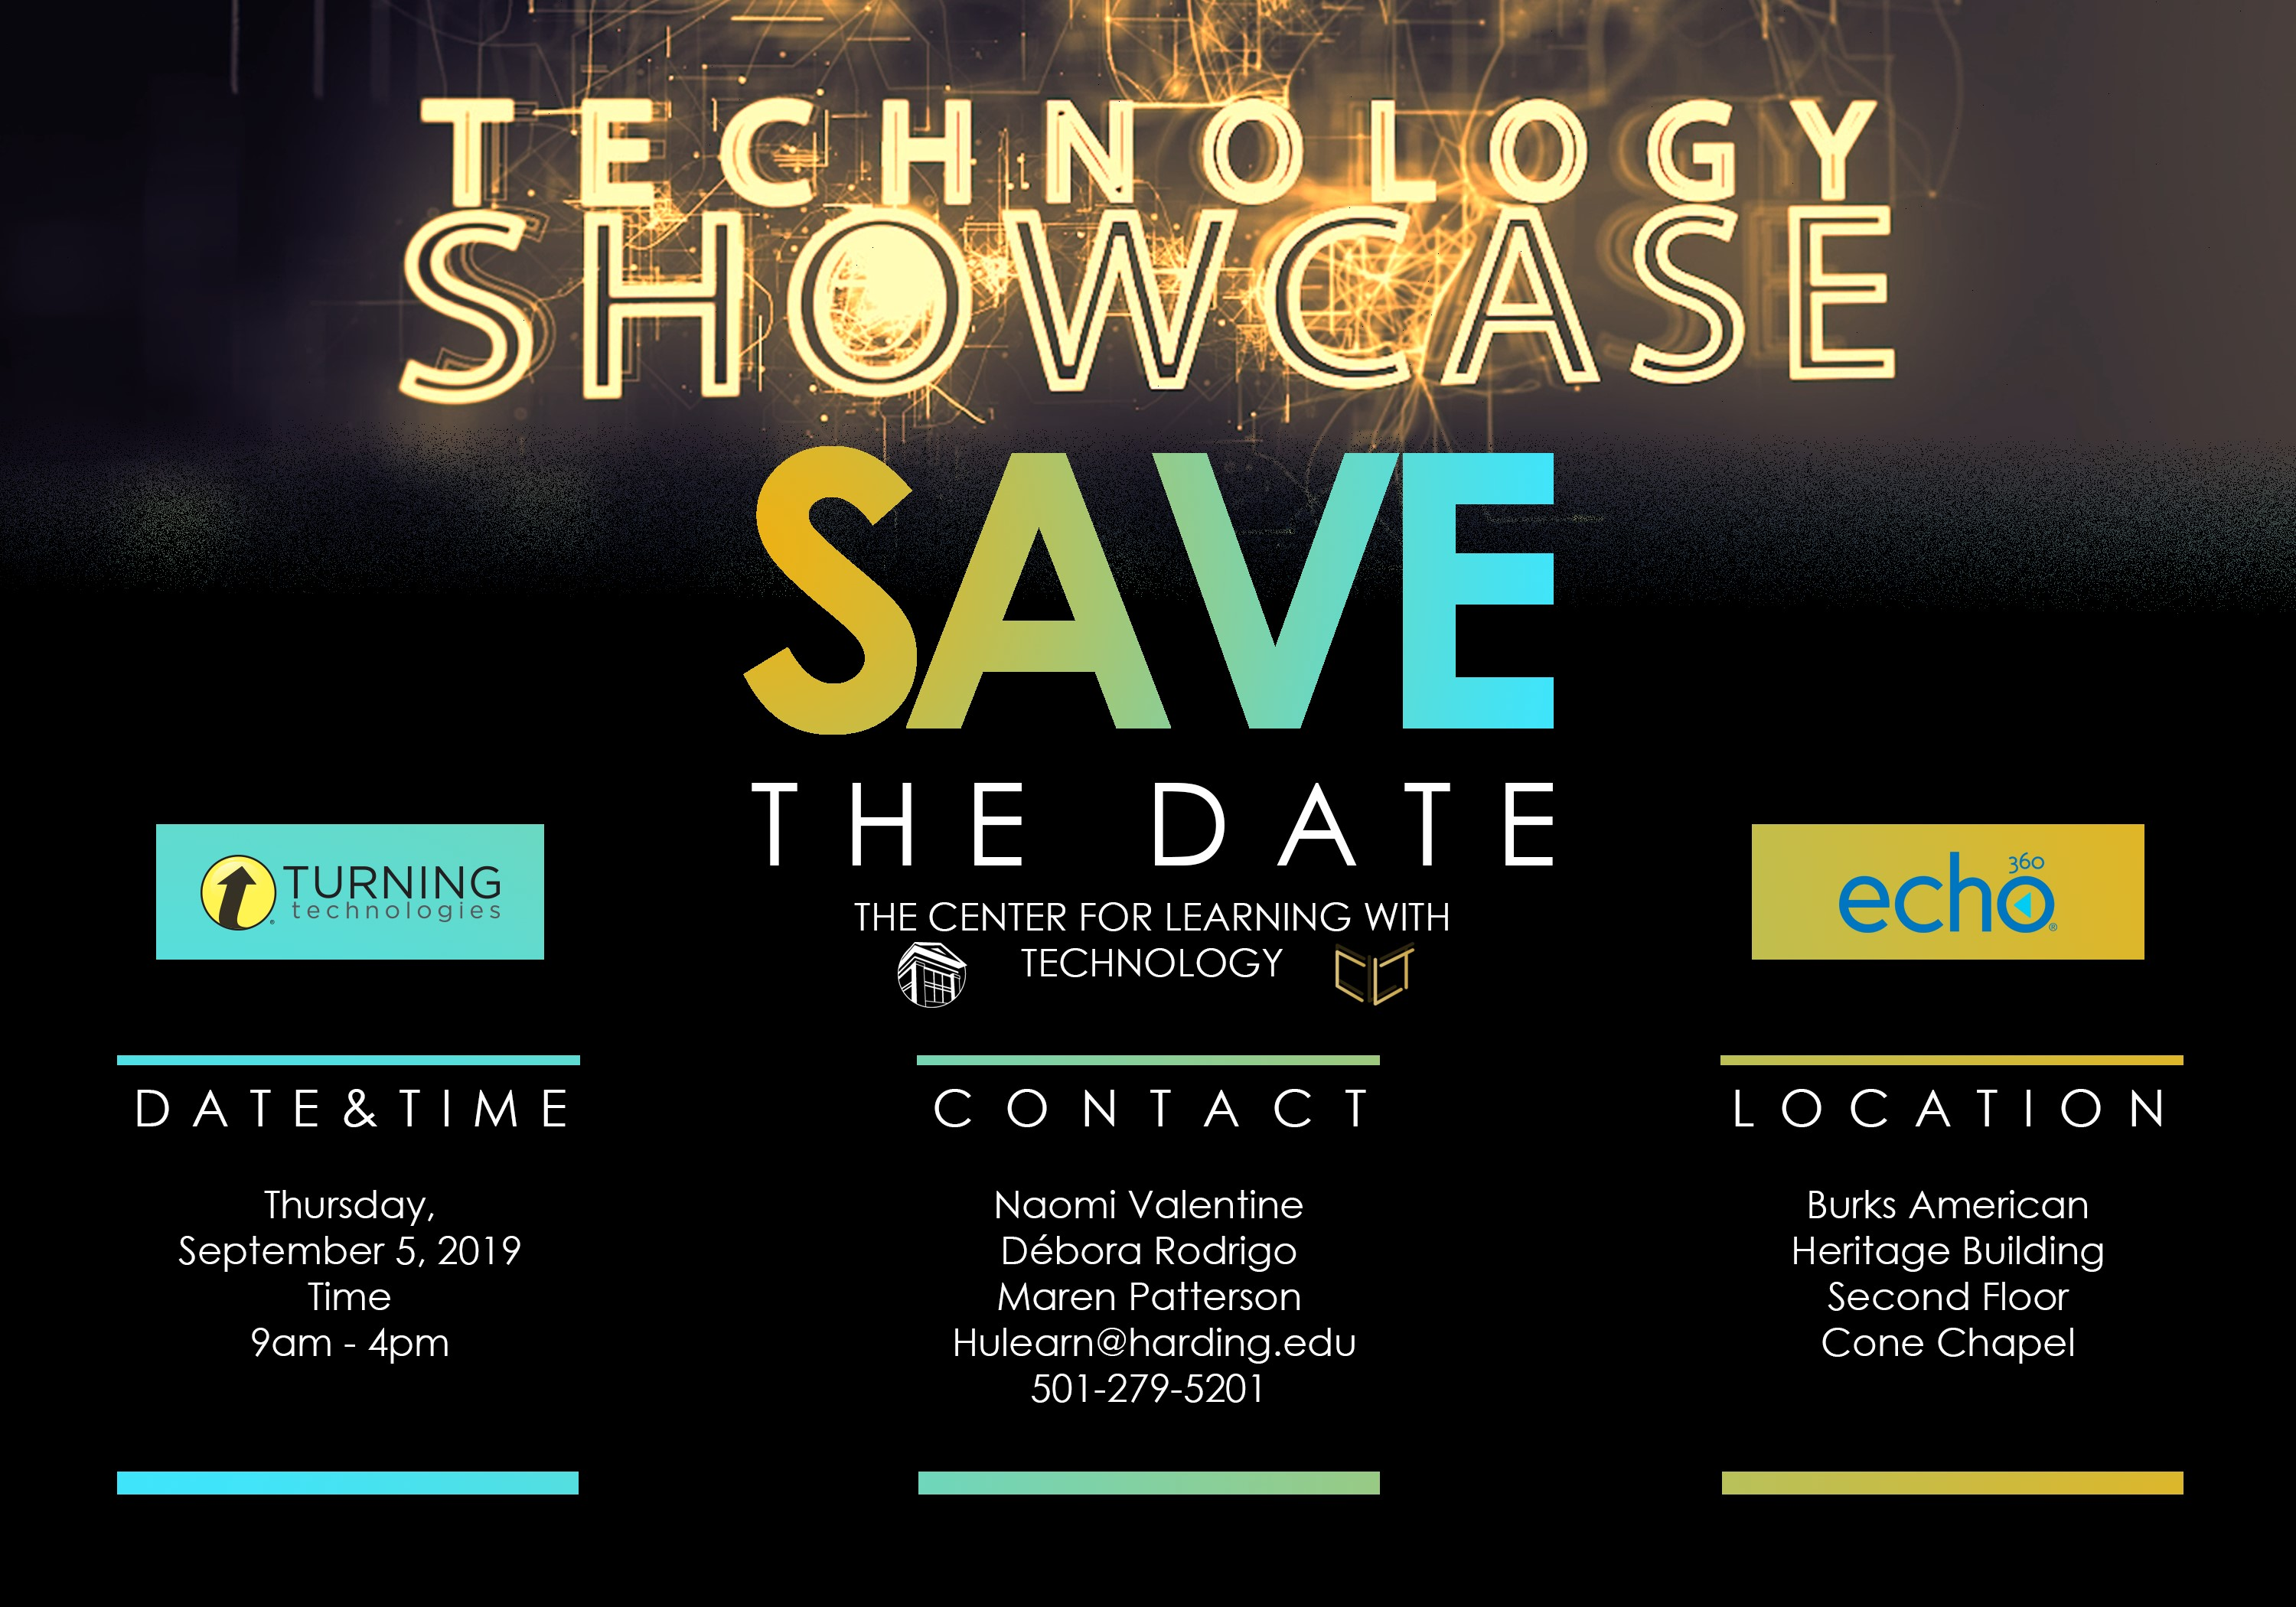 Technology Showcase Details